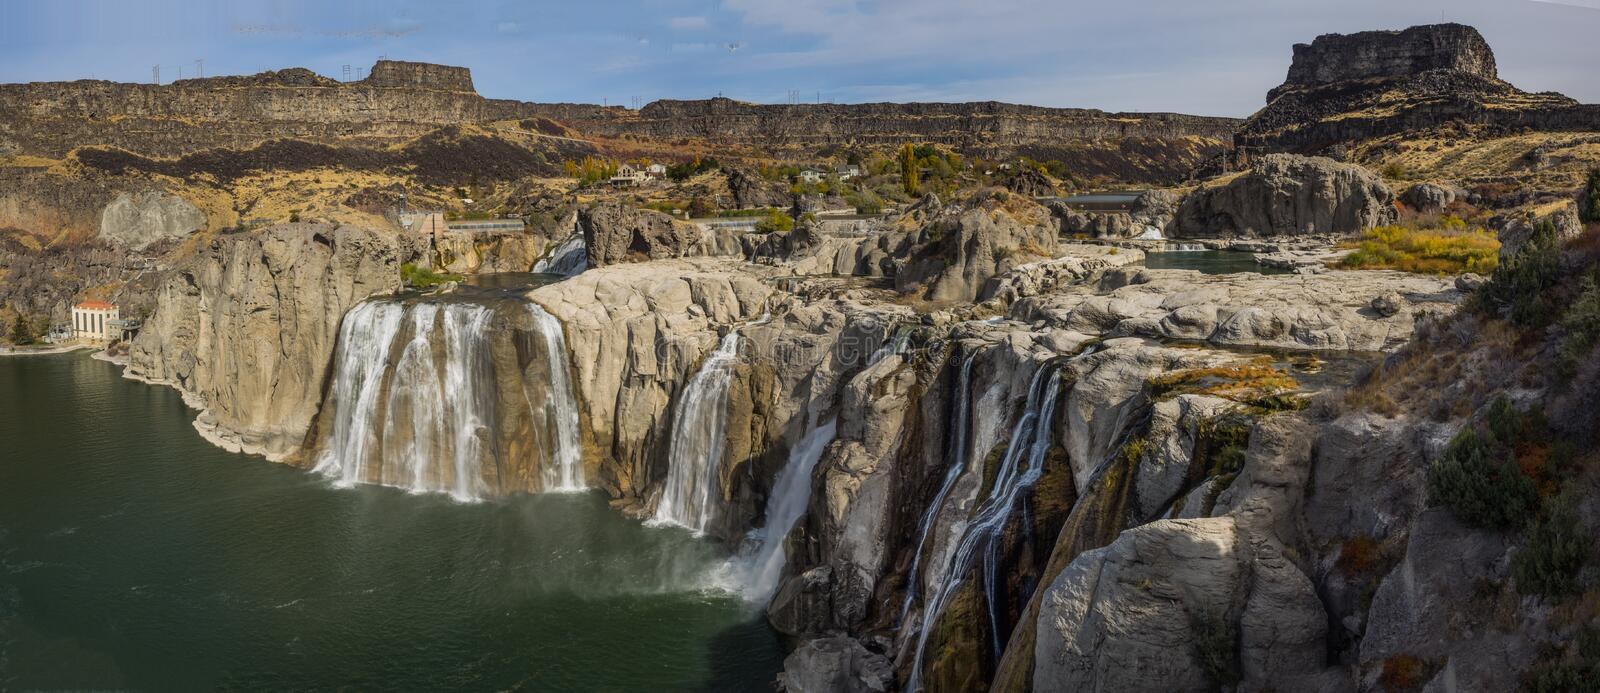 Shoshone Falls in Idaho royalty free stock photography